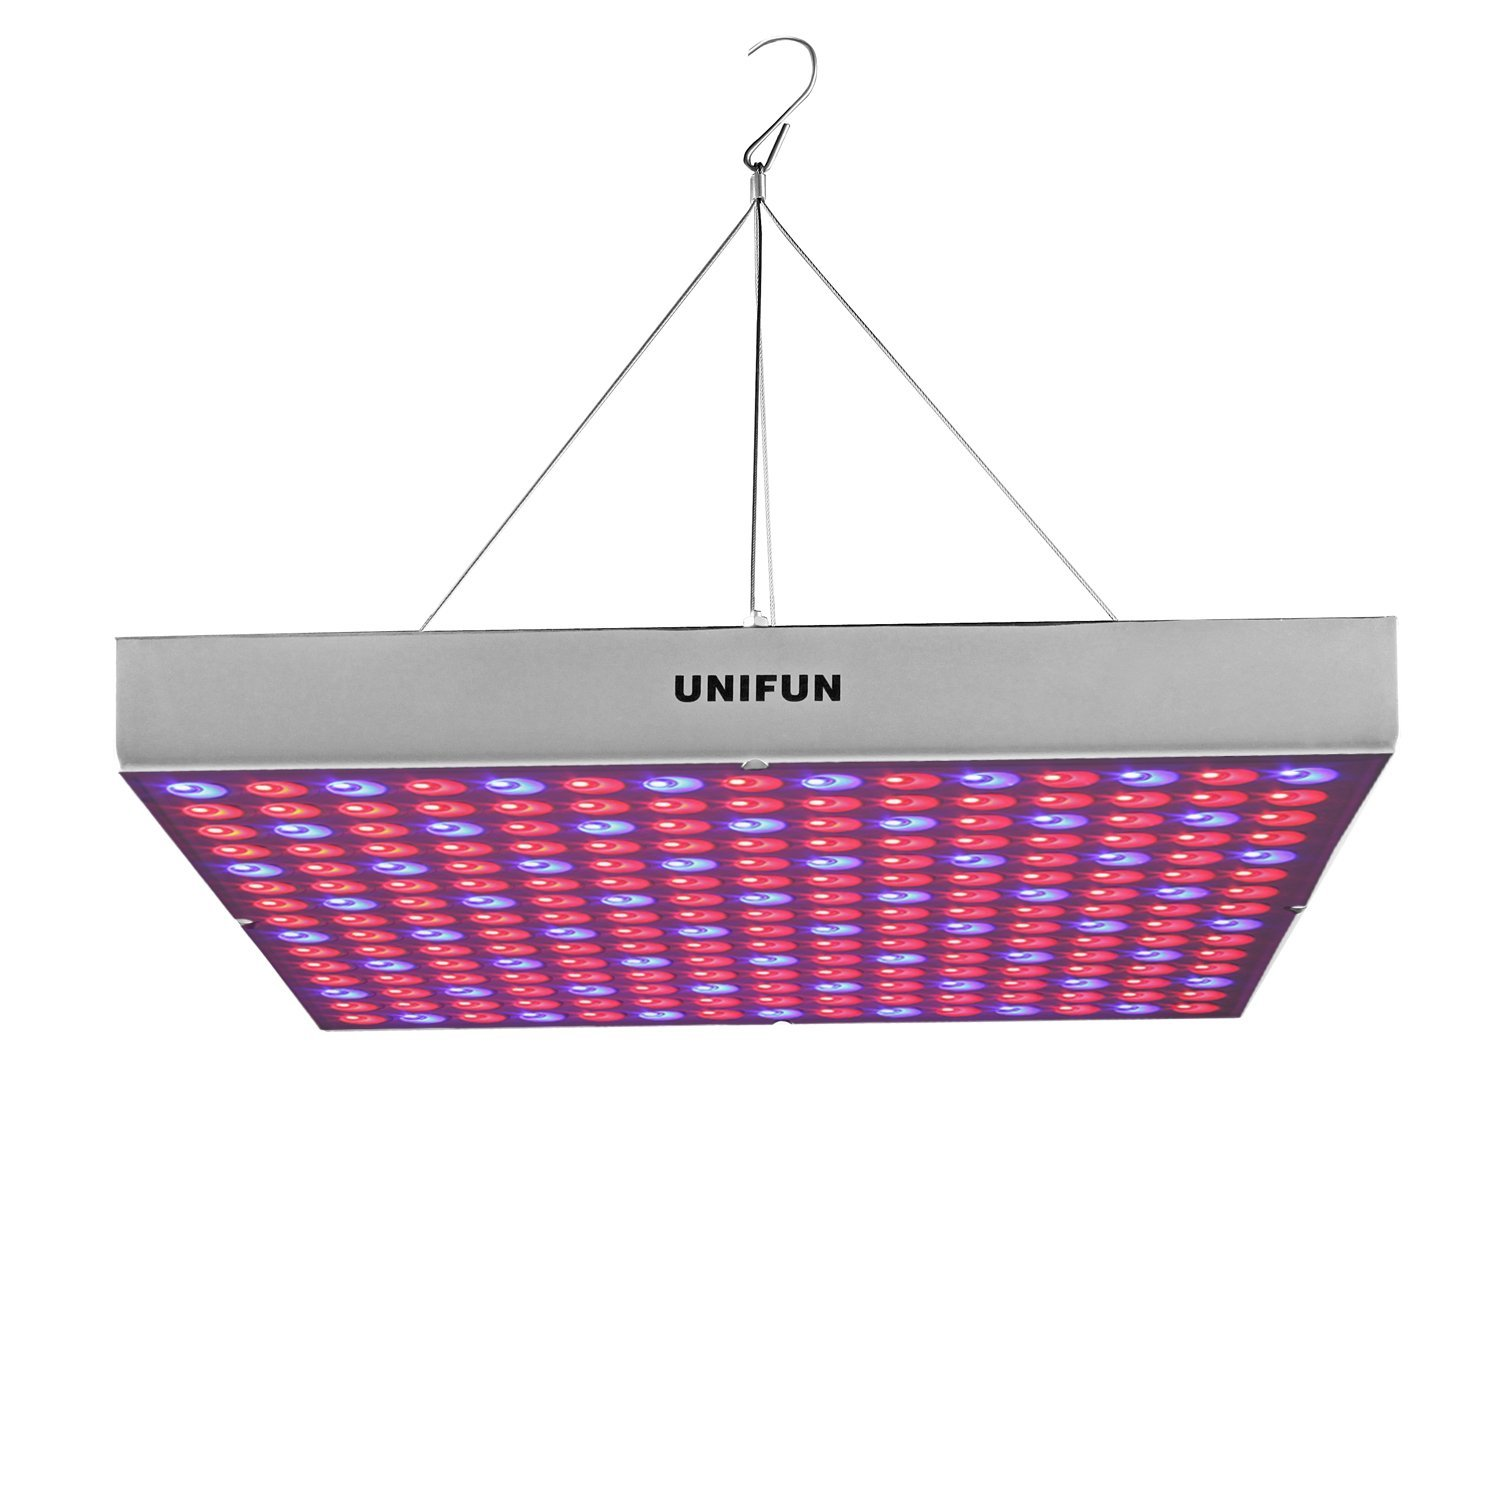 4. UNIFUN 45W LED Grow Light